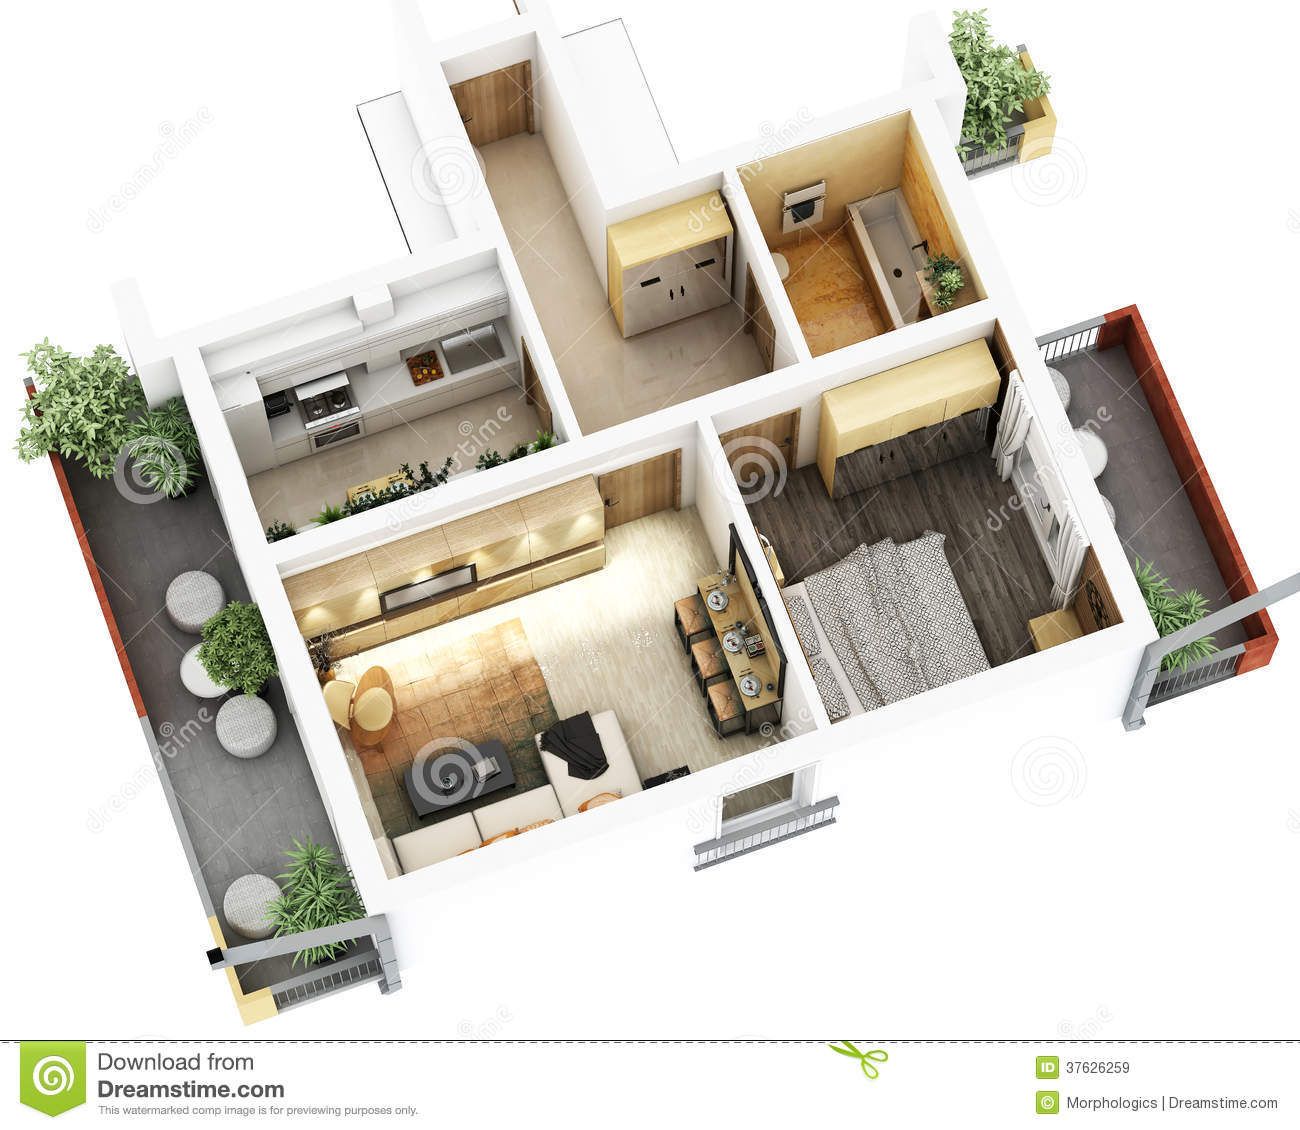 Bungalow 3d Floor Plan: 3d Floor Plan Stock Illustration. Illustration Of Design